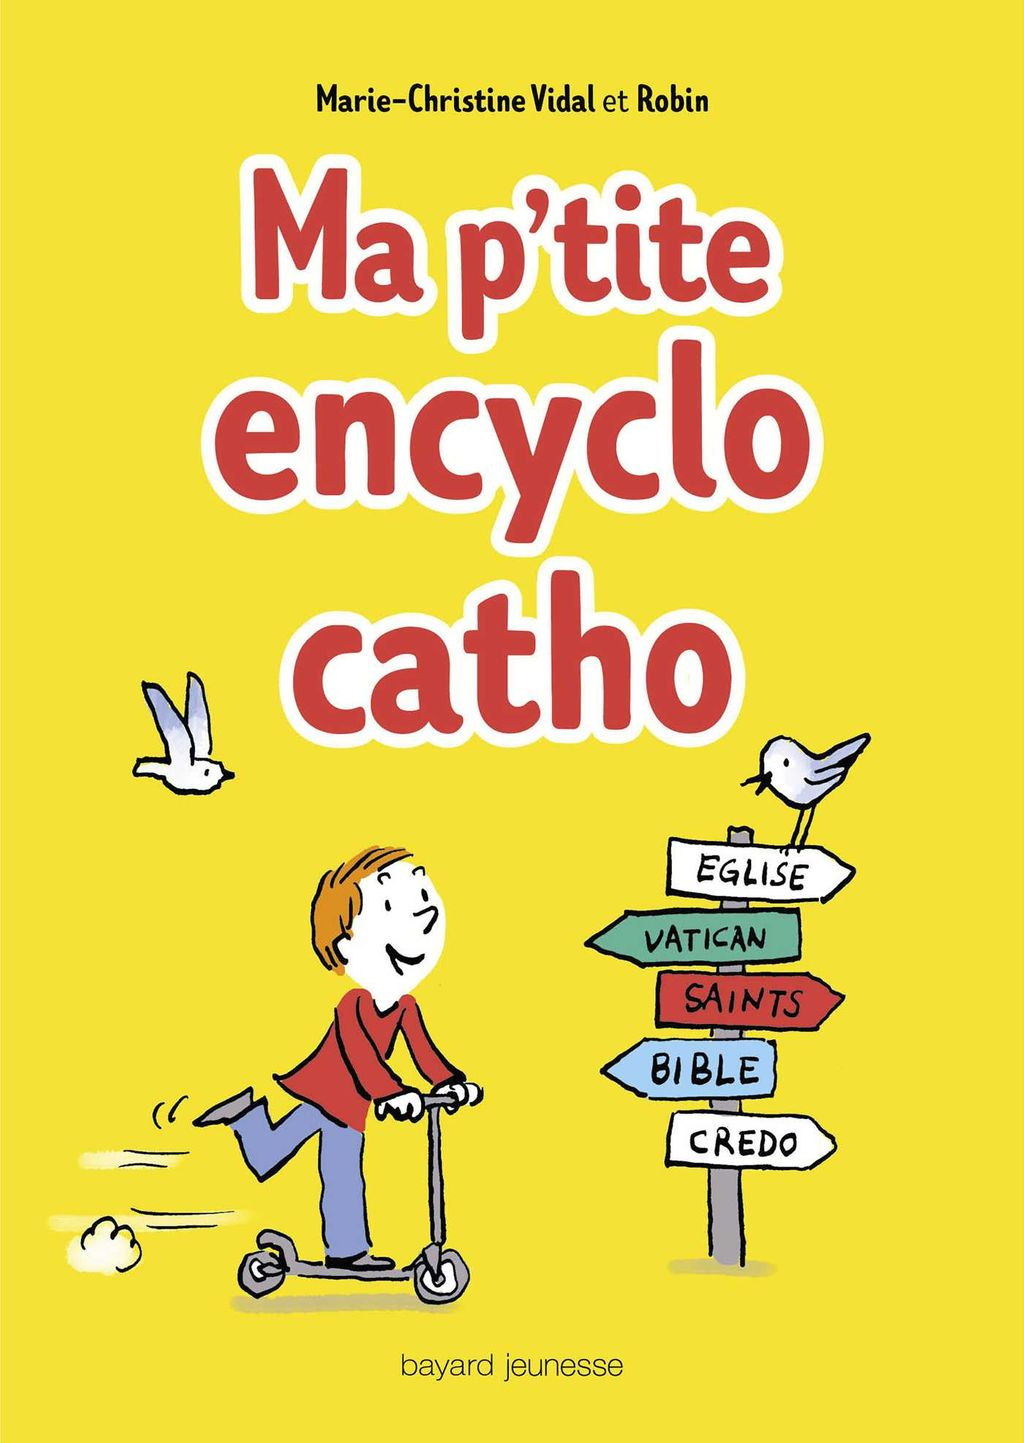 « Ma p'tite encyclo catho » cover